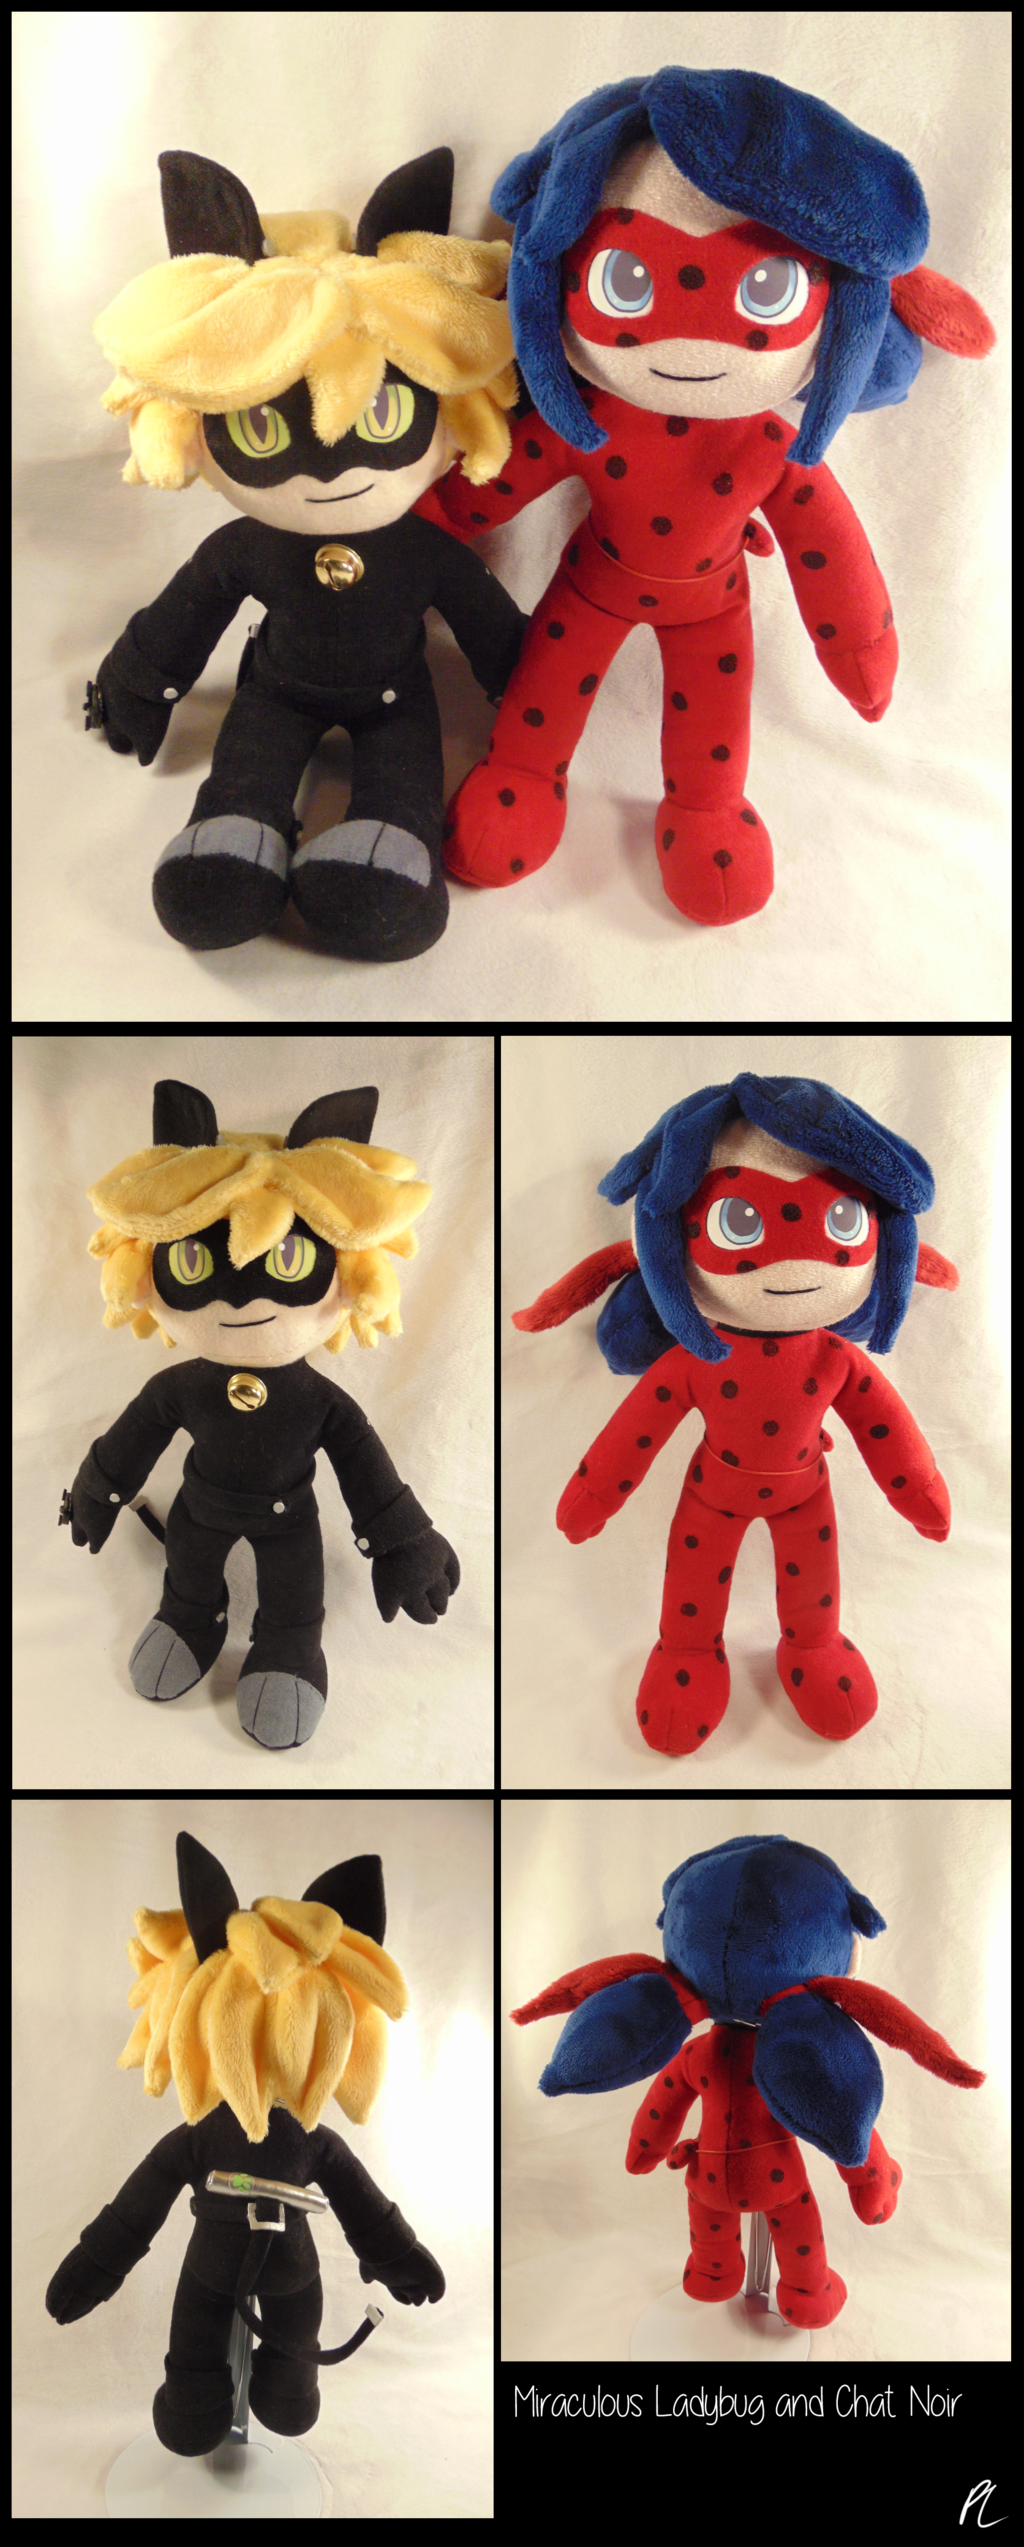 Ladybug And Chat Noir Plushies By Dizziedoodles Miraculous Ladybug Toys Ladybug Miraculous Ladybug